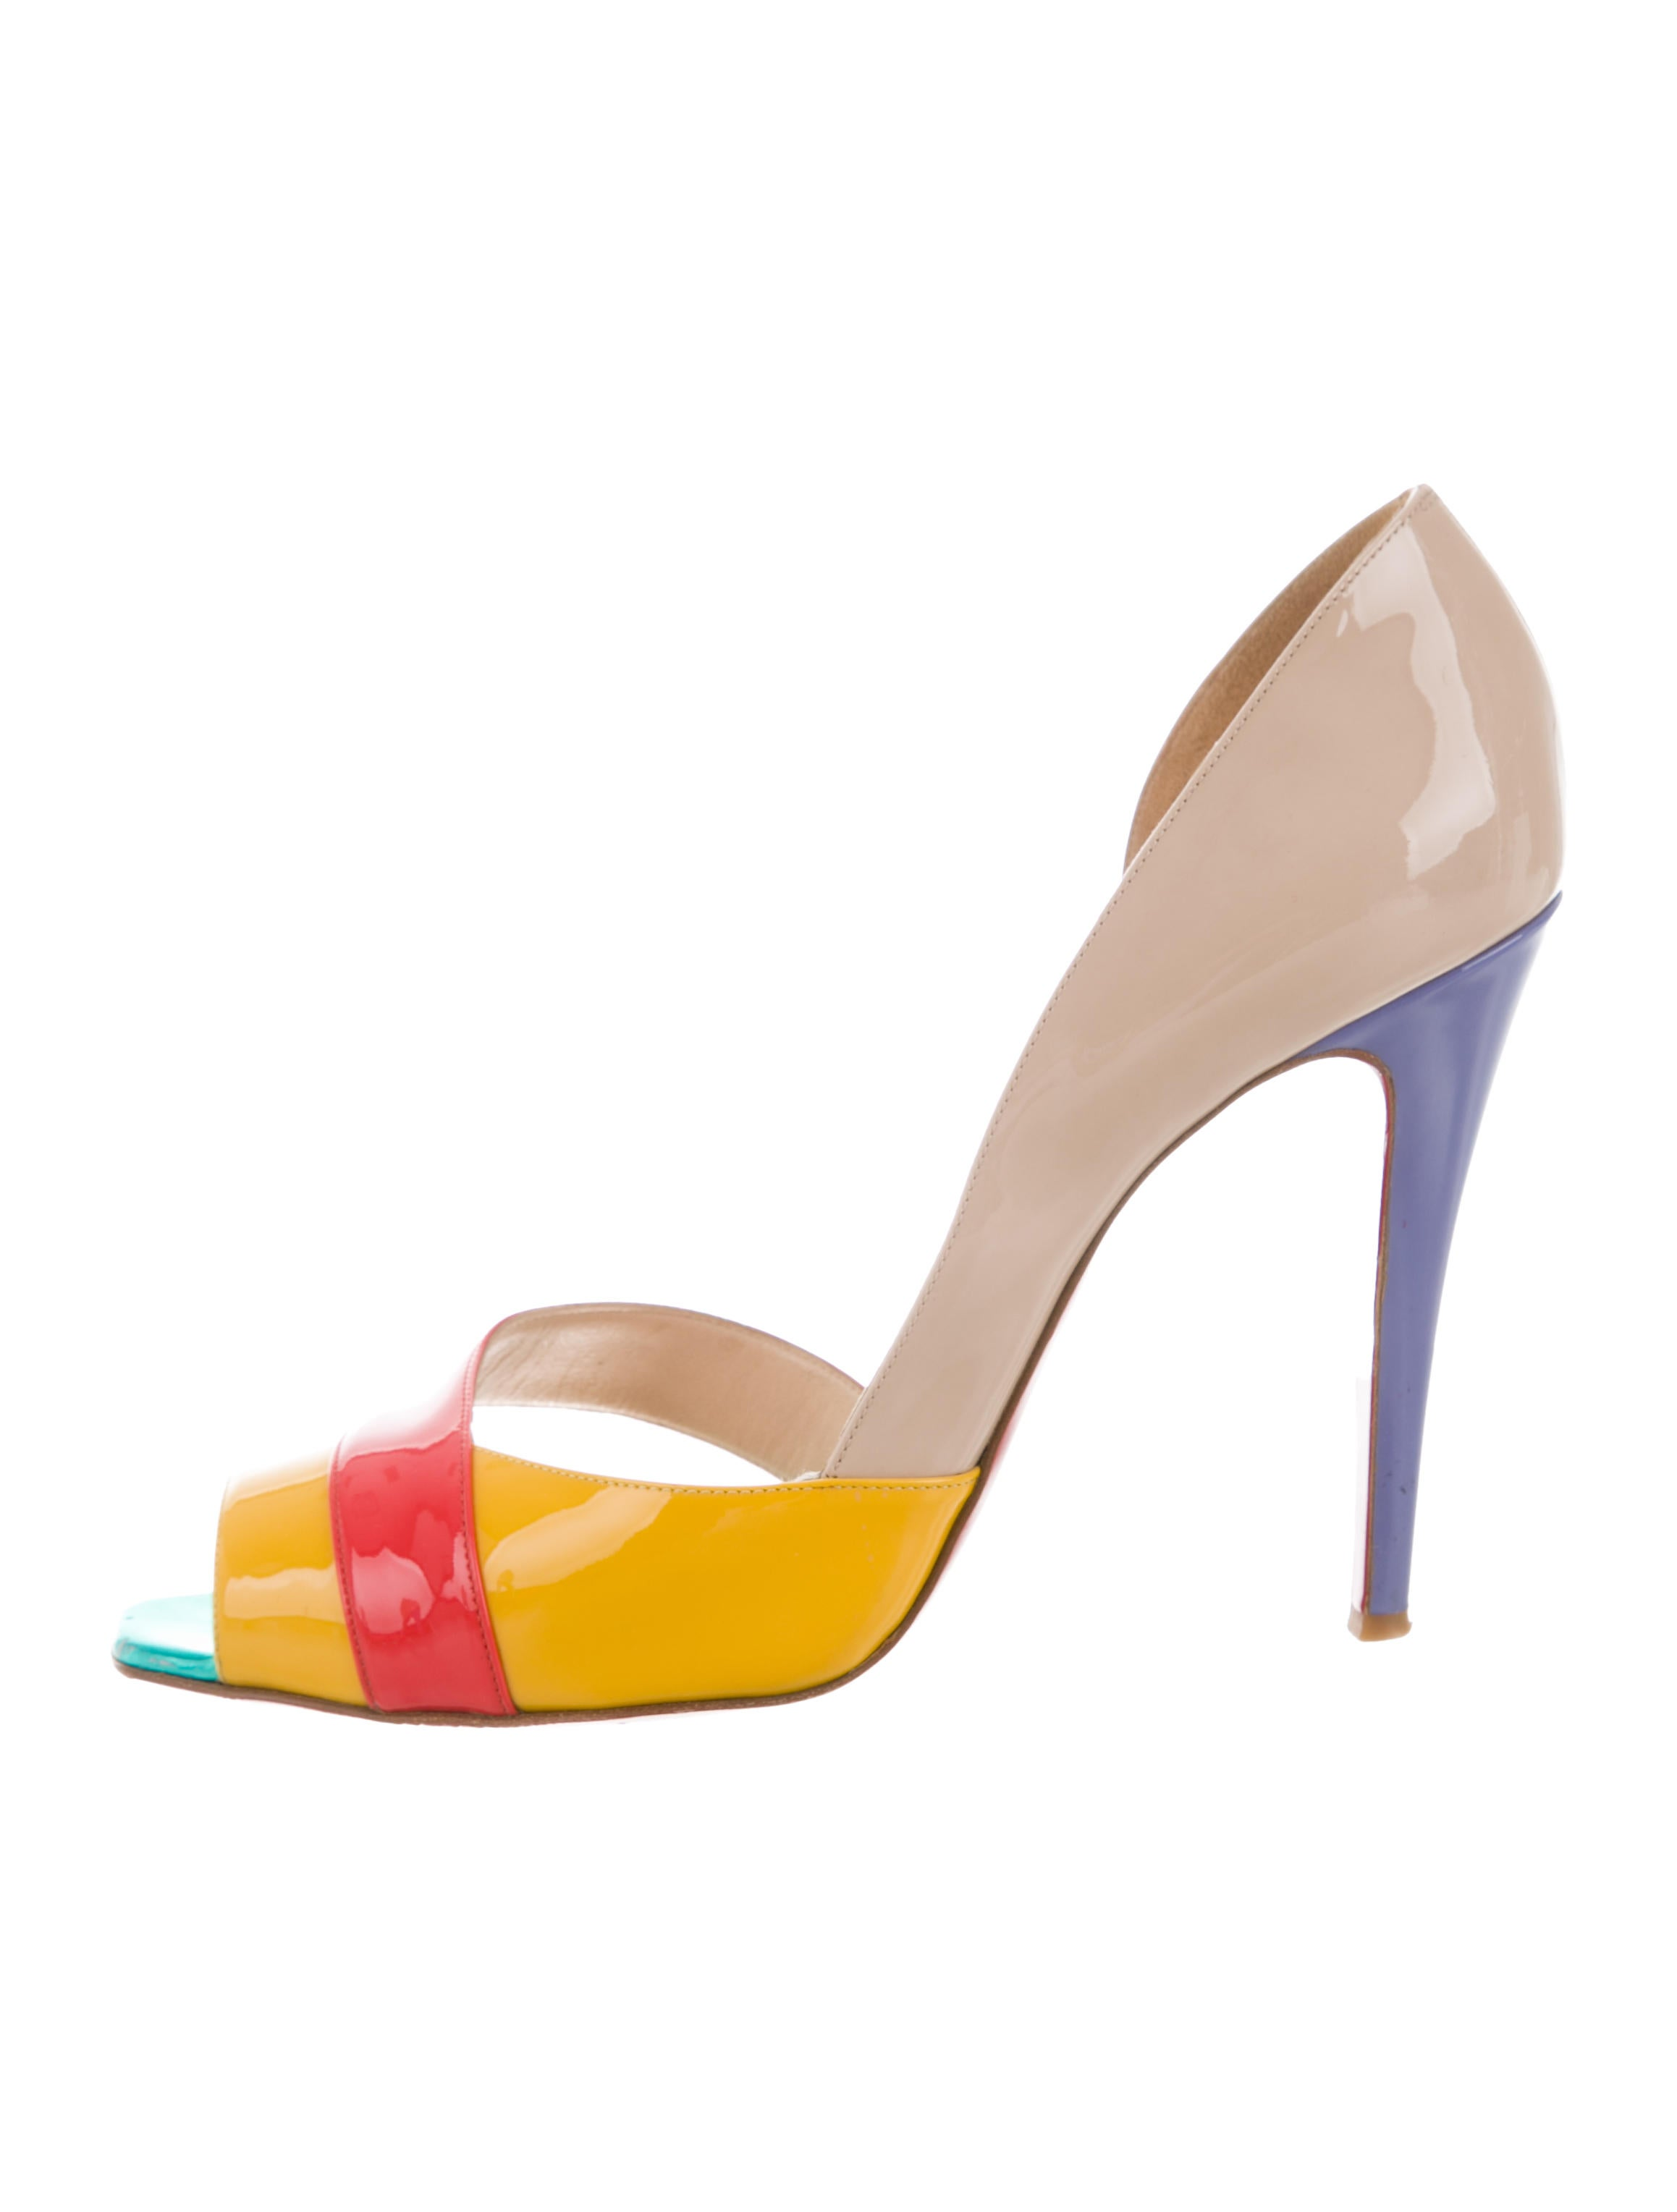 buy cheap finishline Christian Louboutin Escadre Peep-Toe Pumps cheap sale prices 20yD4baJy